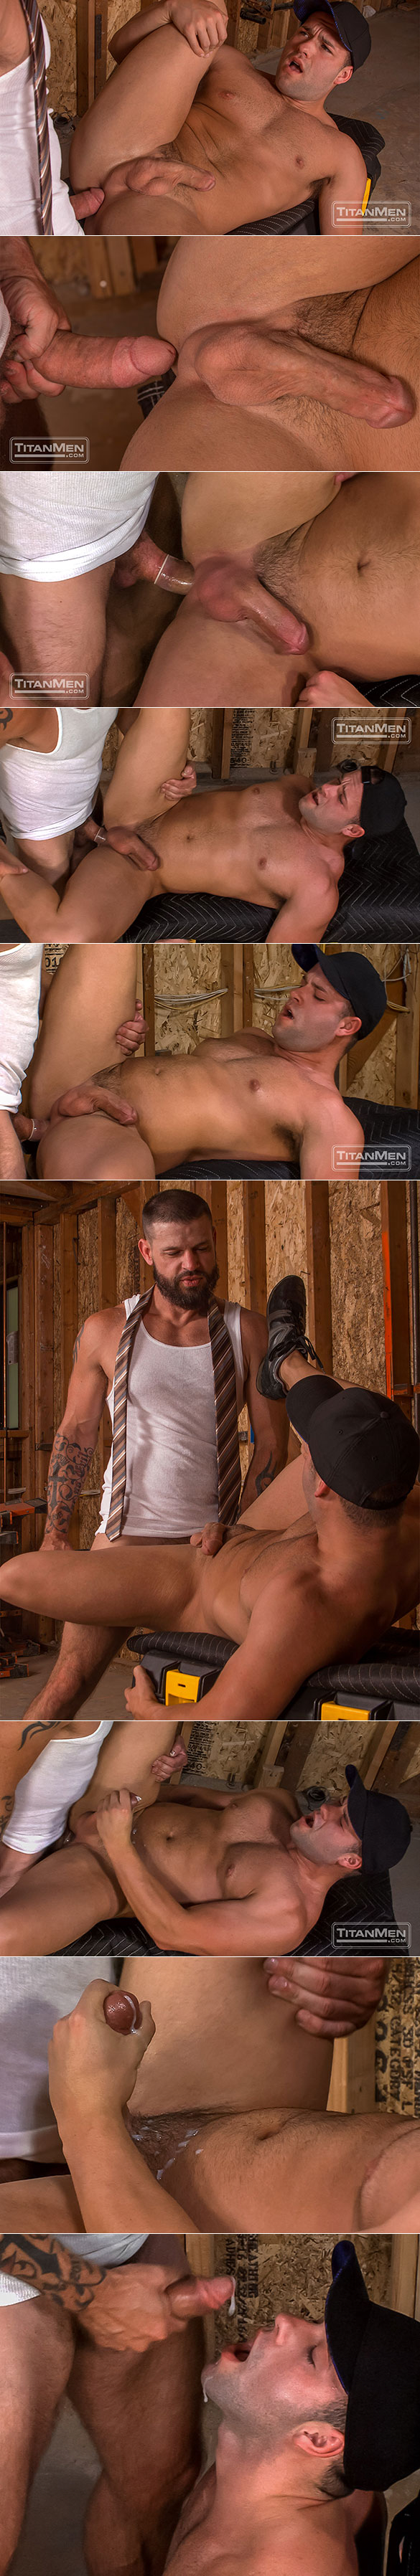 "TitanMen: Luke Adams takes Tex Davidson's 9-inch cock up his bubble butt in ""West Texas Park & Ride"""